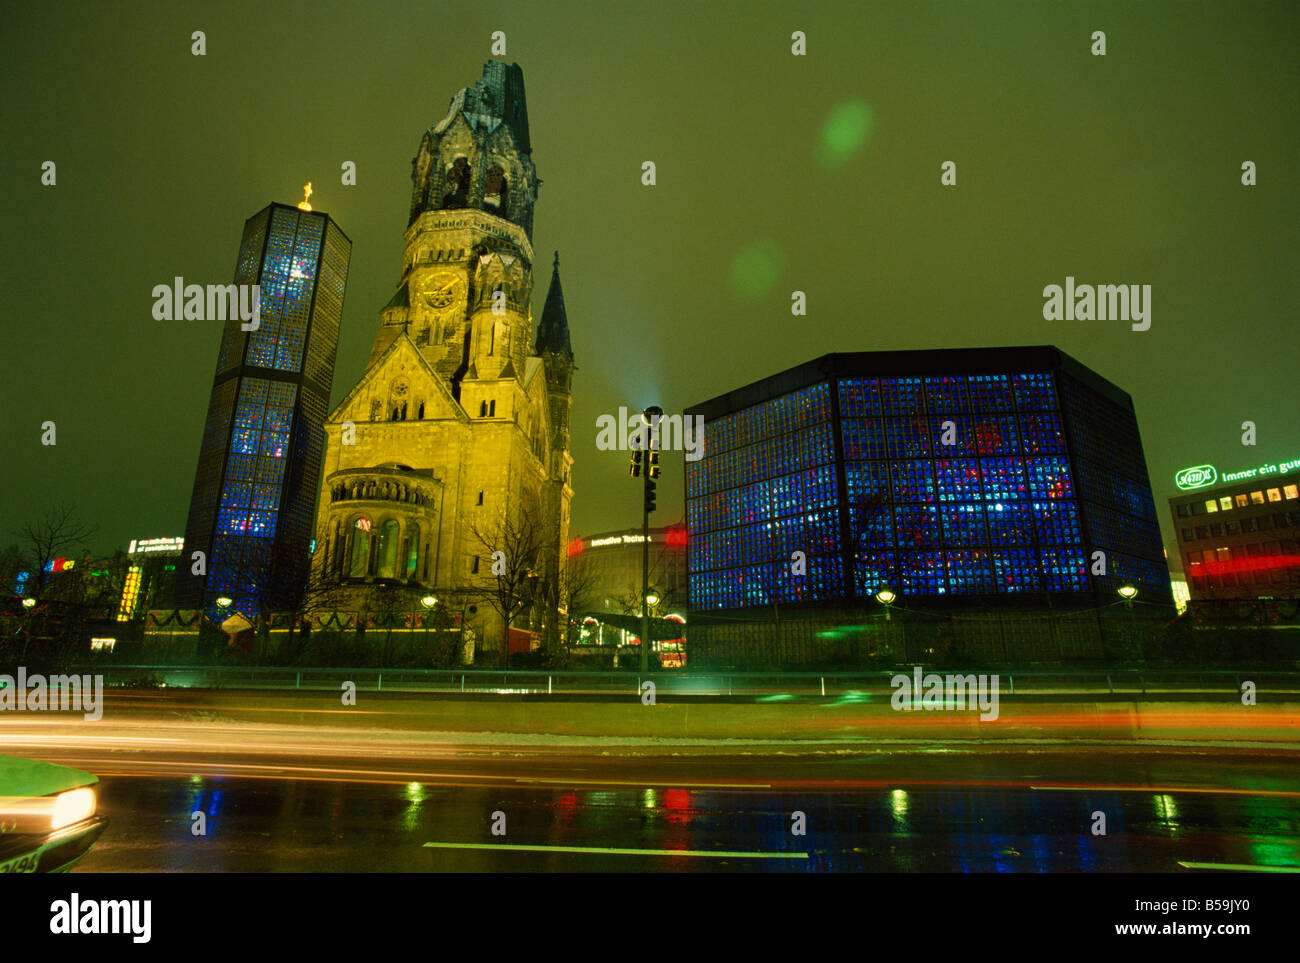 Contrast of the Remembrance Church and the Kaiser Wilhelm Memorial Church, illuminated at night, Kurfurstendam, - Stock Image